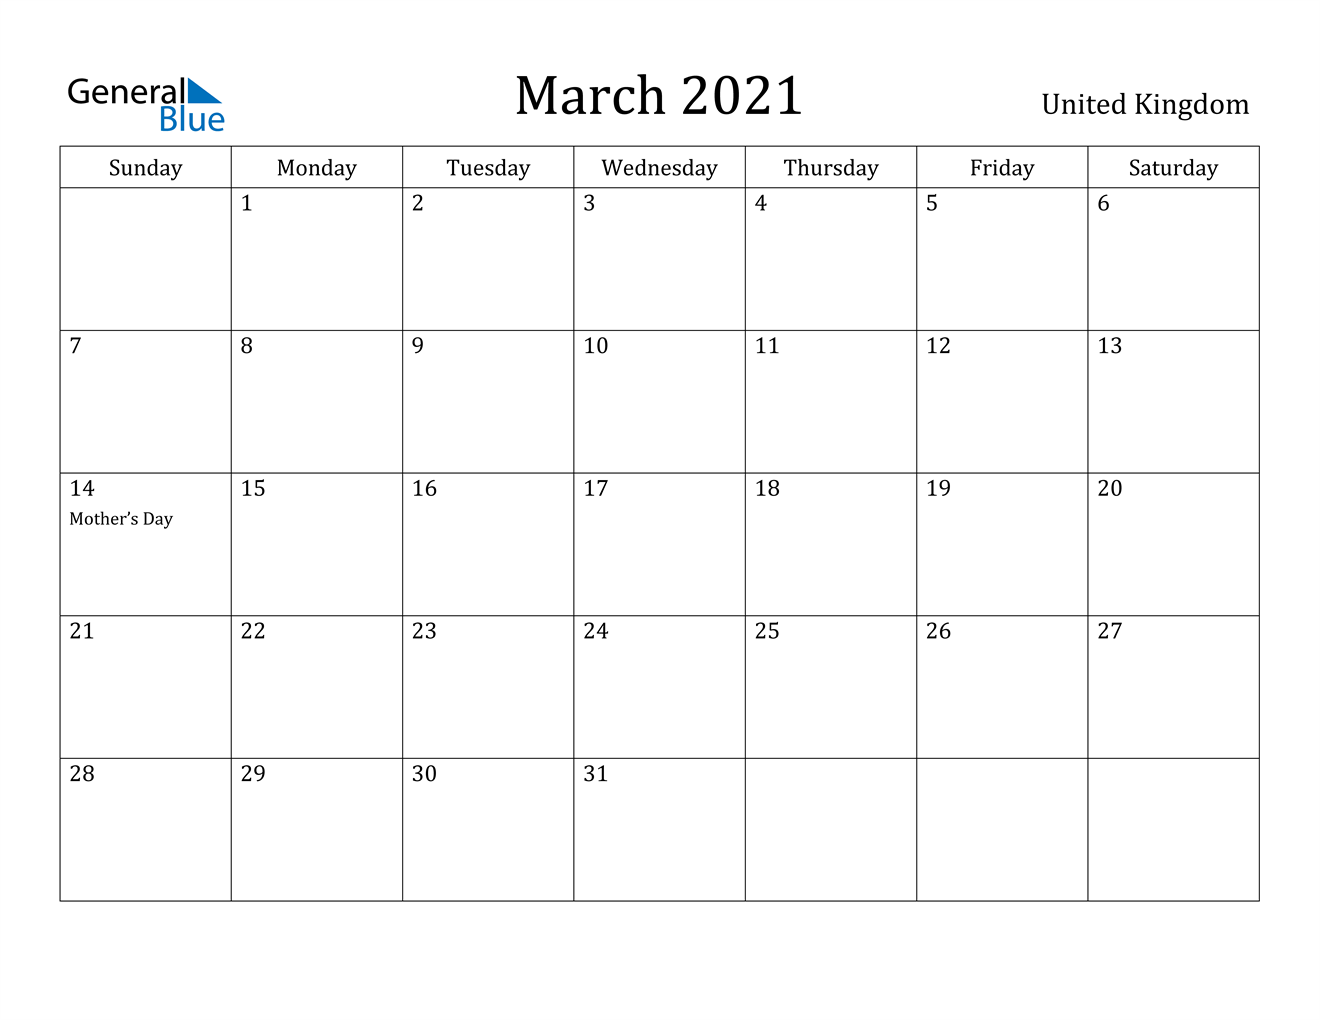 2021 Calendar Uk March 2021 Calendar   United Kingdom